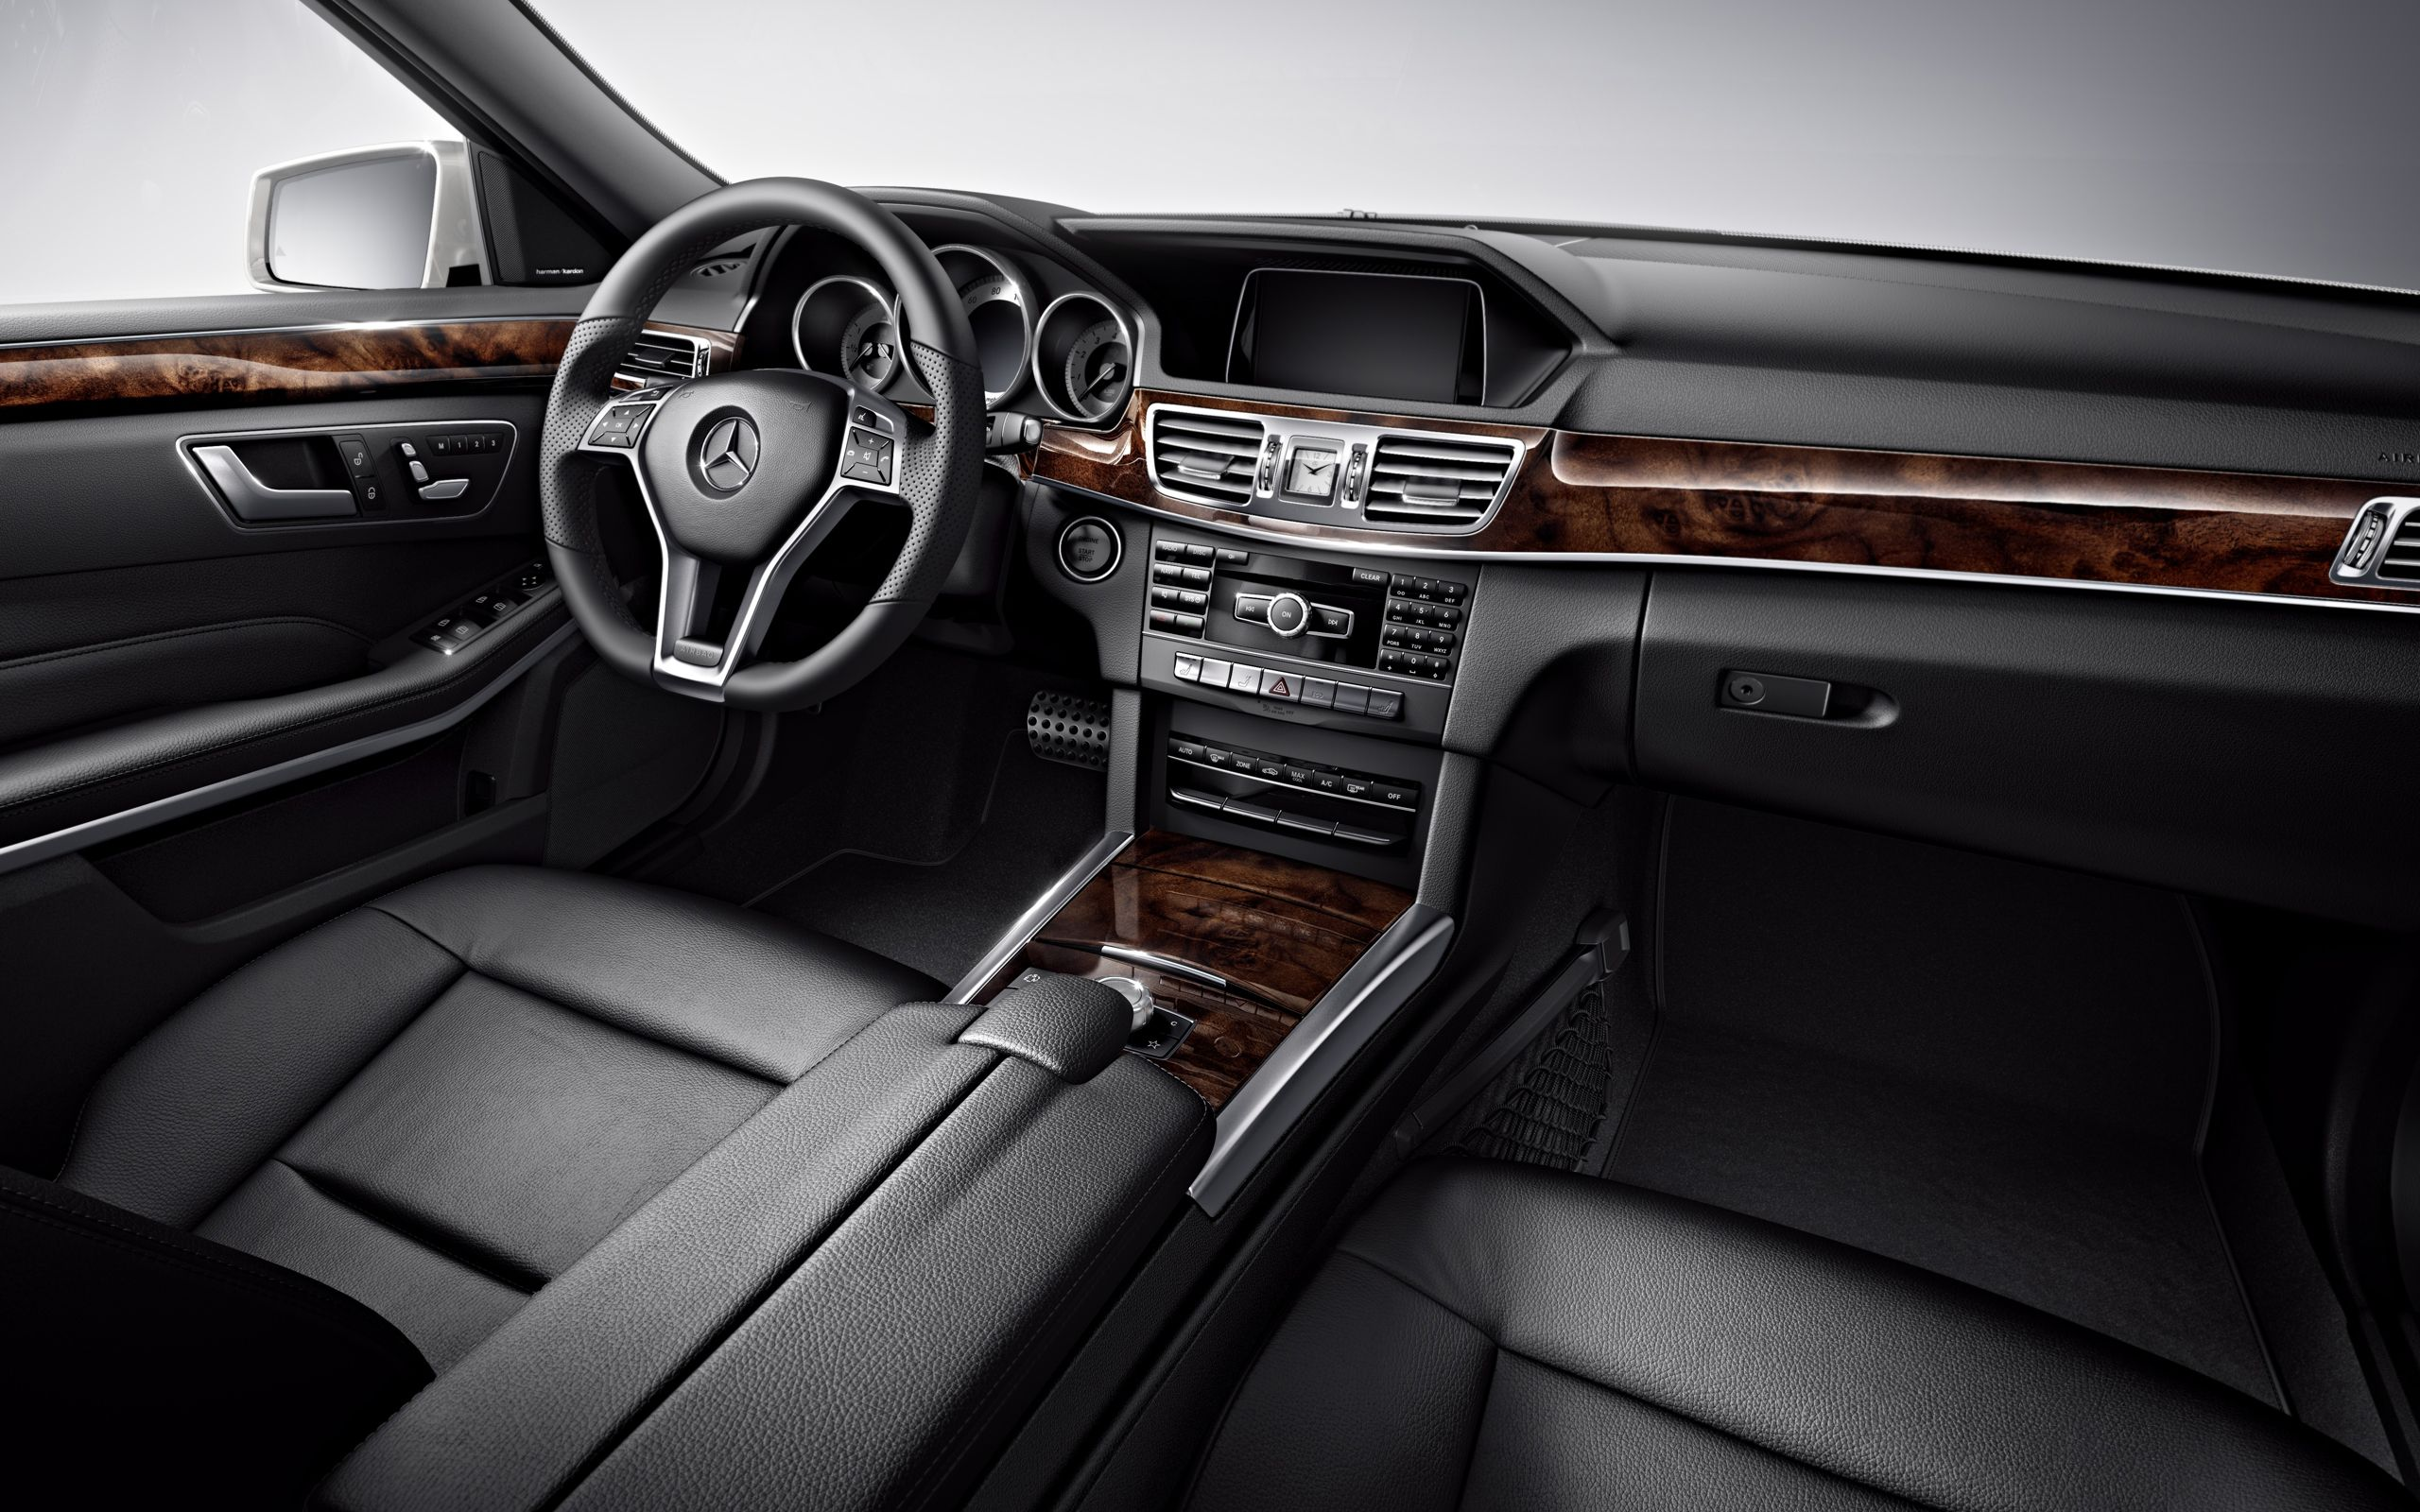 2014 E550 4MATIC Sport Sedan with Black leather and Burl Walnut